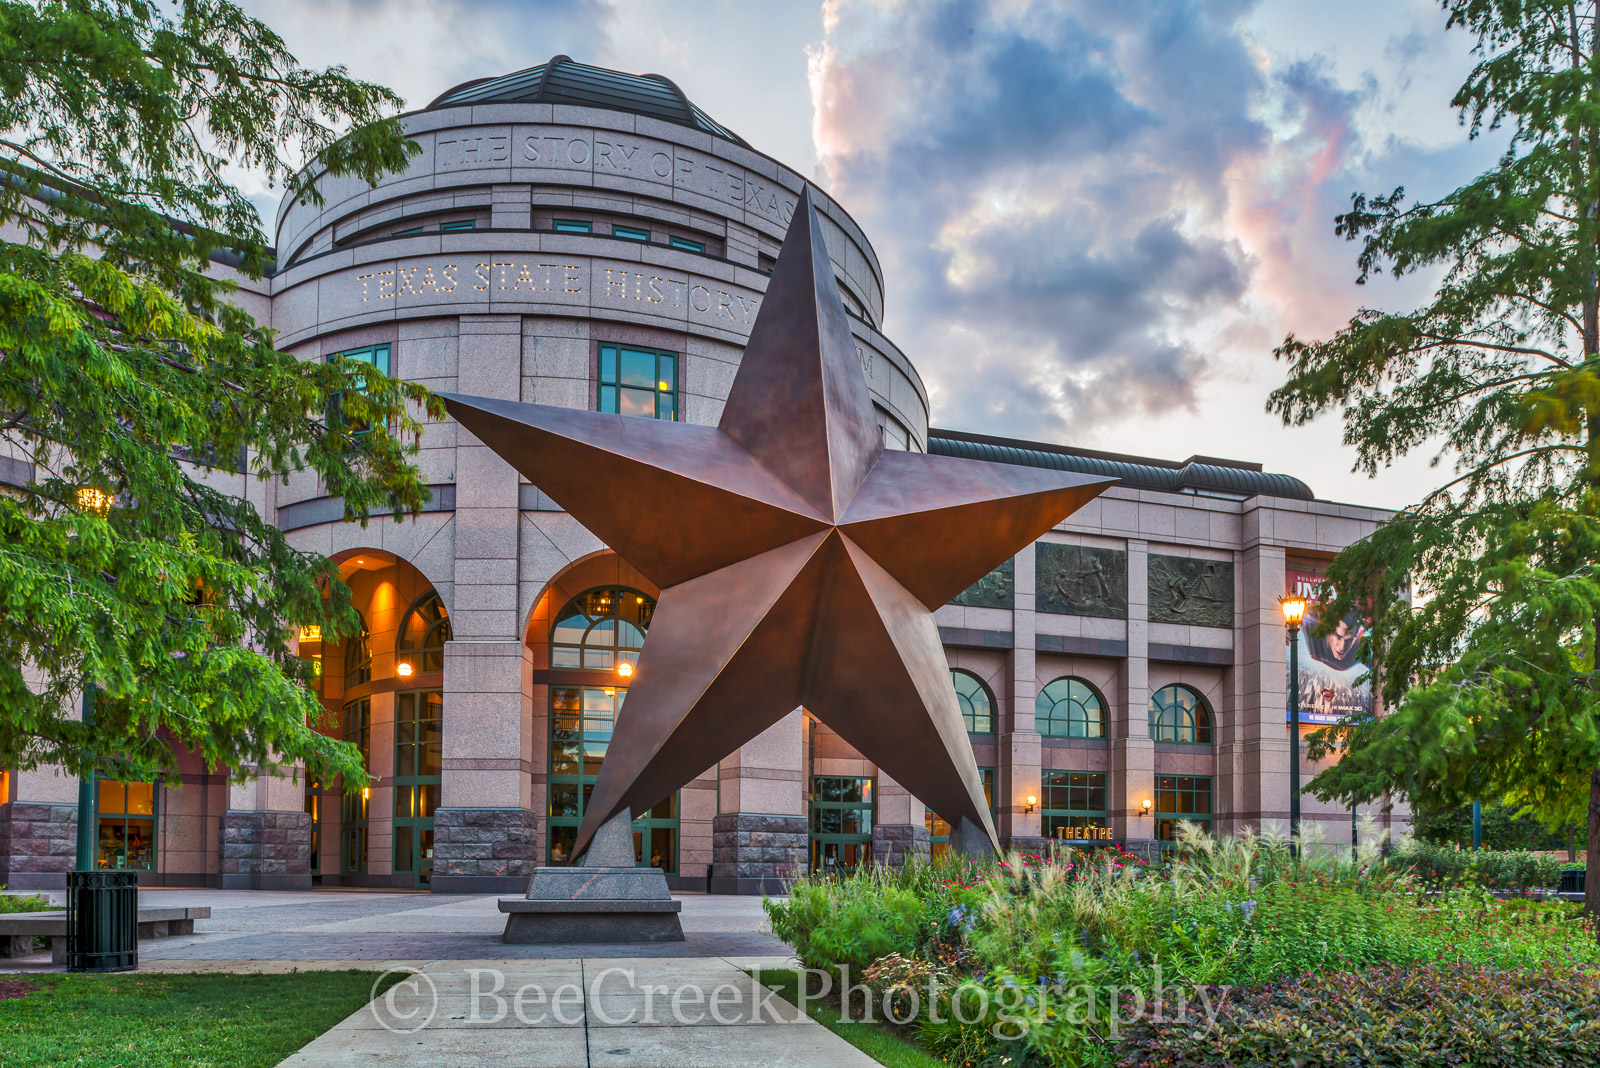 Austin Museum, Bob Bullock Museum, Places to go in Austin, Texas star in front of Museum, Texas symbol, attractions in Austin, austin places, big star, images of Bob Bullock Museum, images of austin, , photo